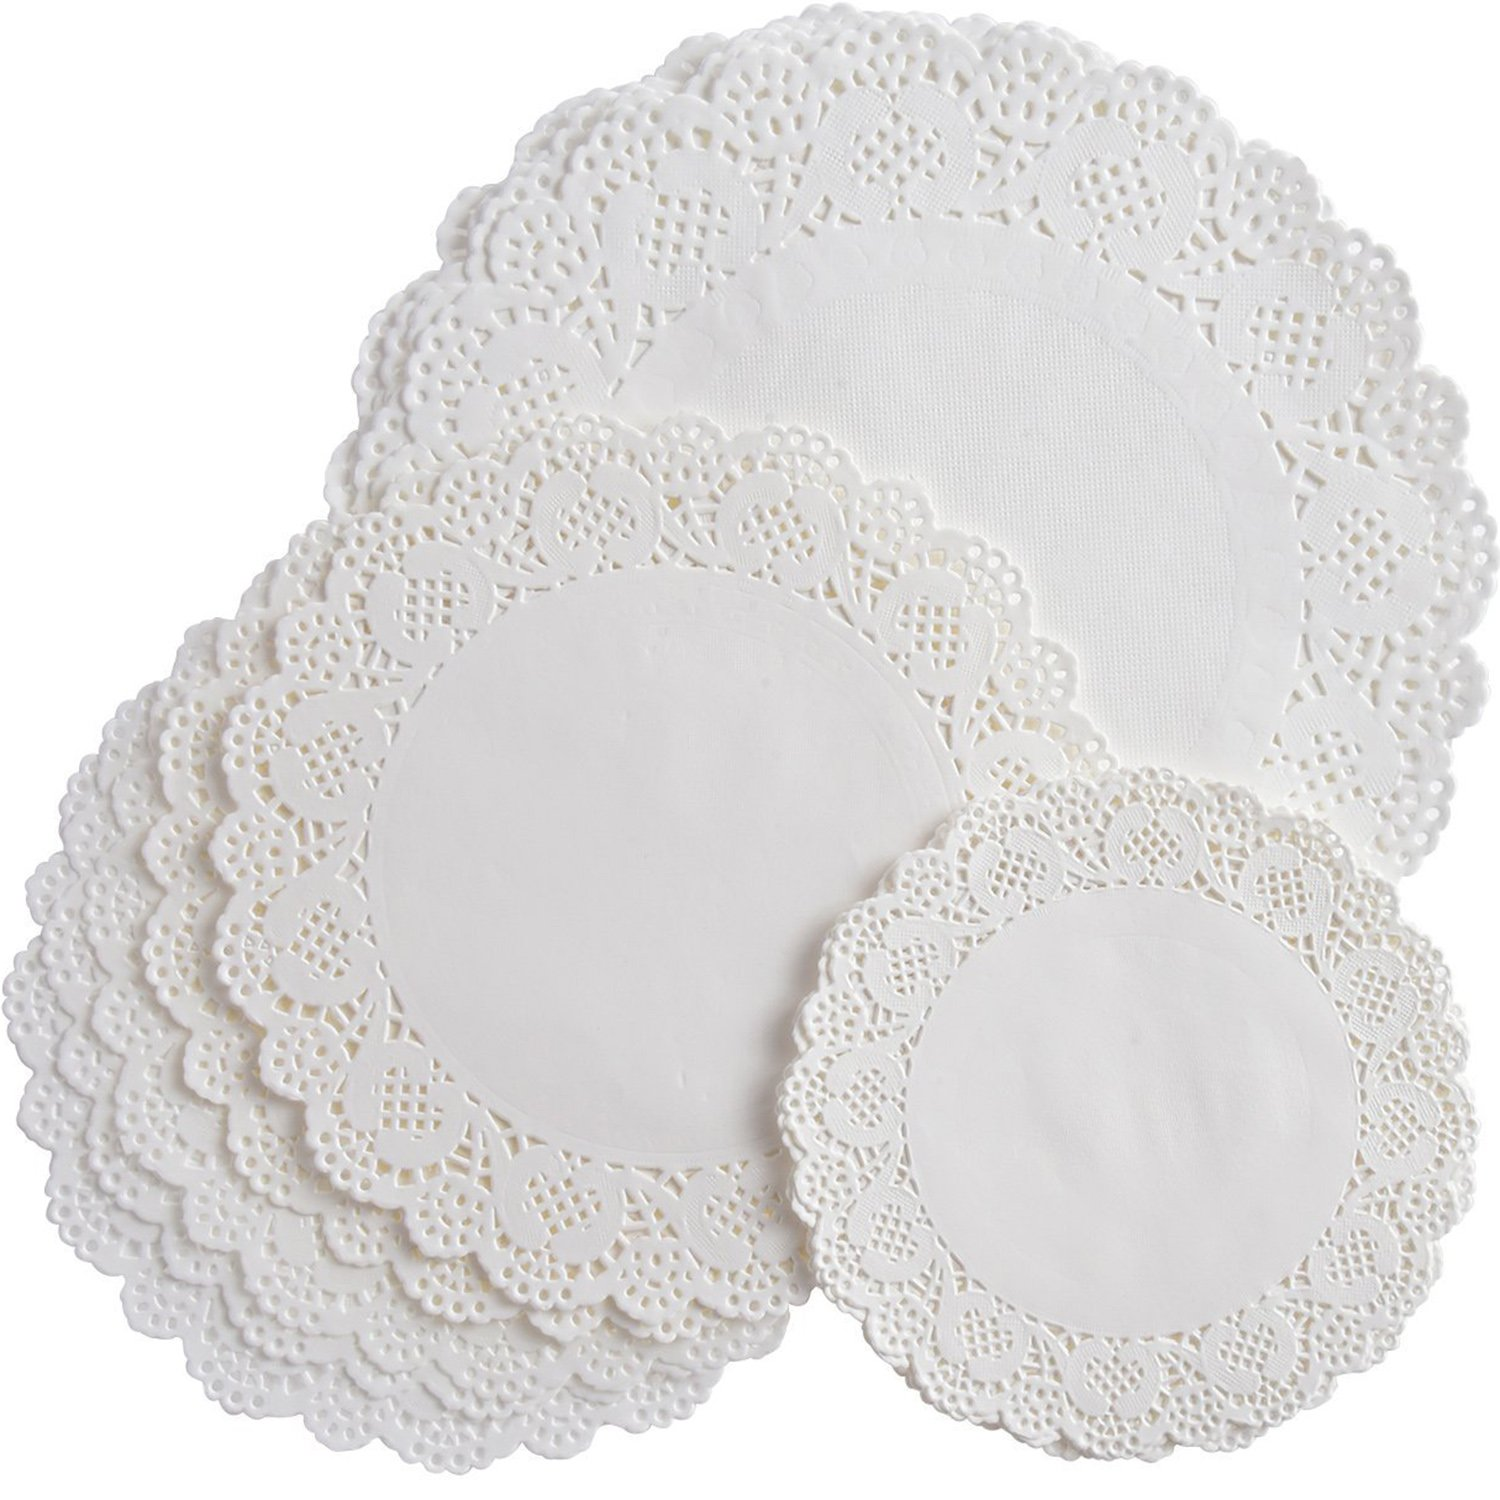 Bememo 108 Pieces White Round Paper Doilies Lace Doily Cake Packaging Paper Pad for Party Wedding Decorations, 3 Sizes